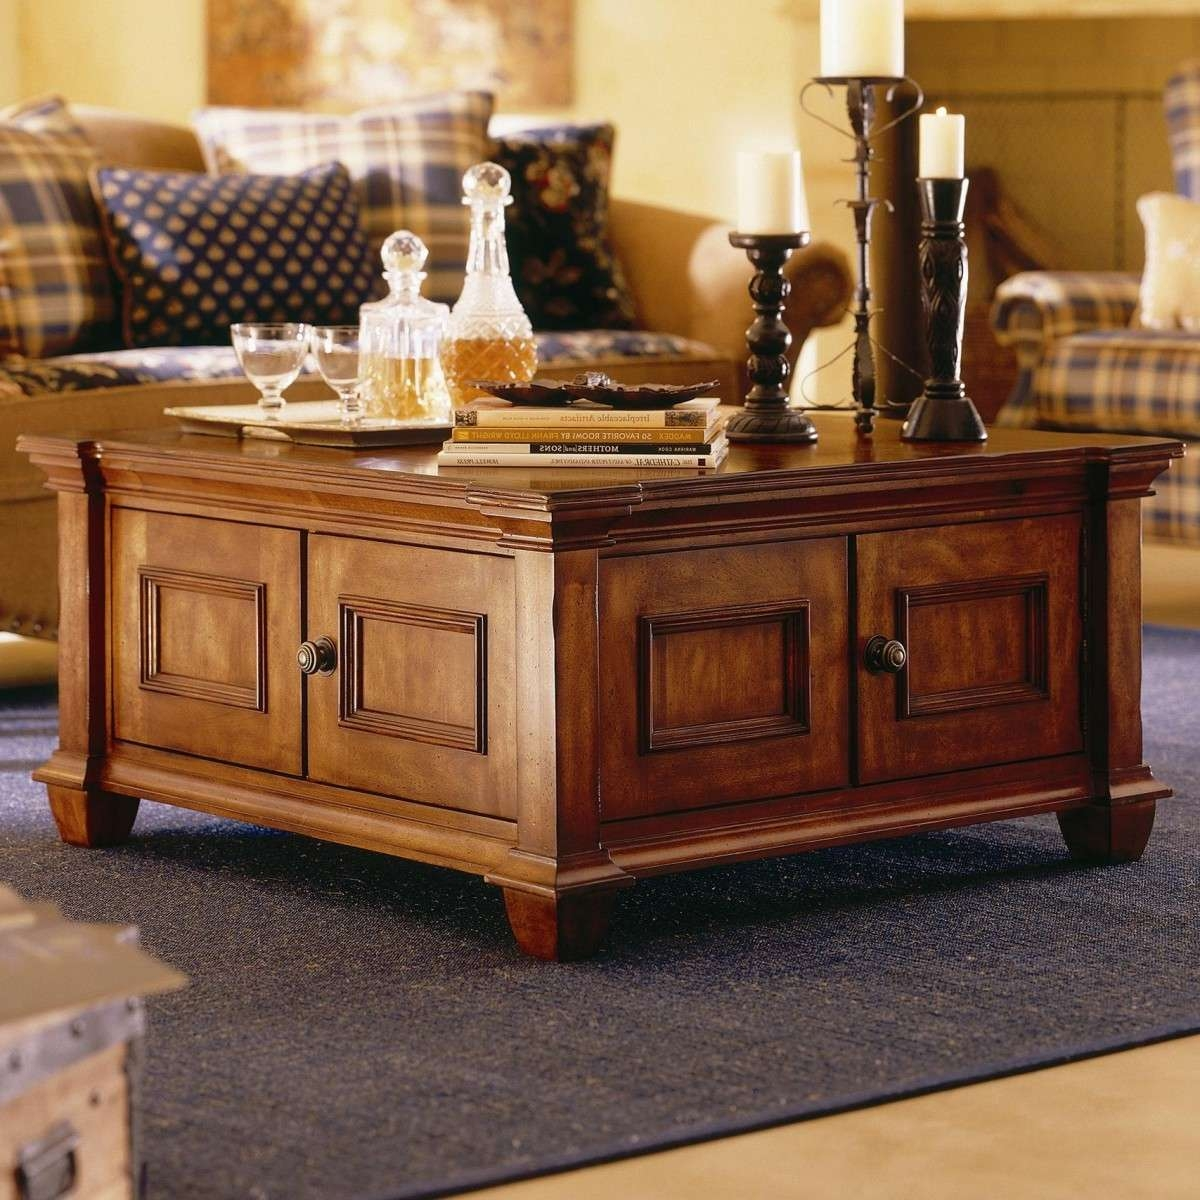 Coffee Tables : Square Coffee Table With Storage Cubes Drawers Pertaining To Most Current Square Coffee Table Storages (View 5 of 20)